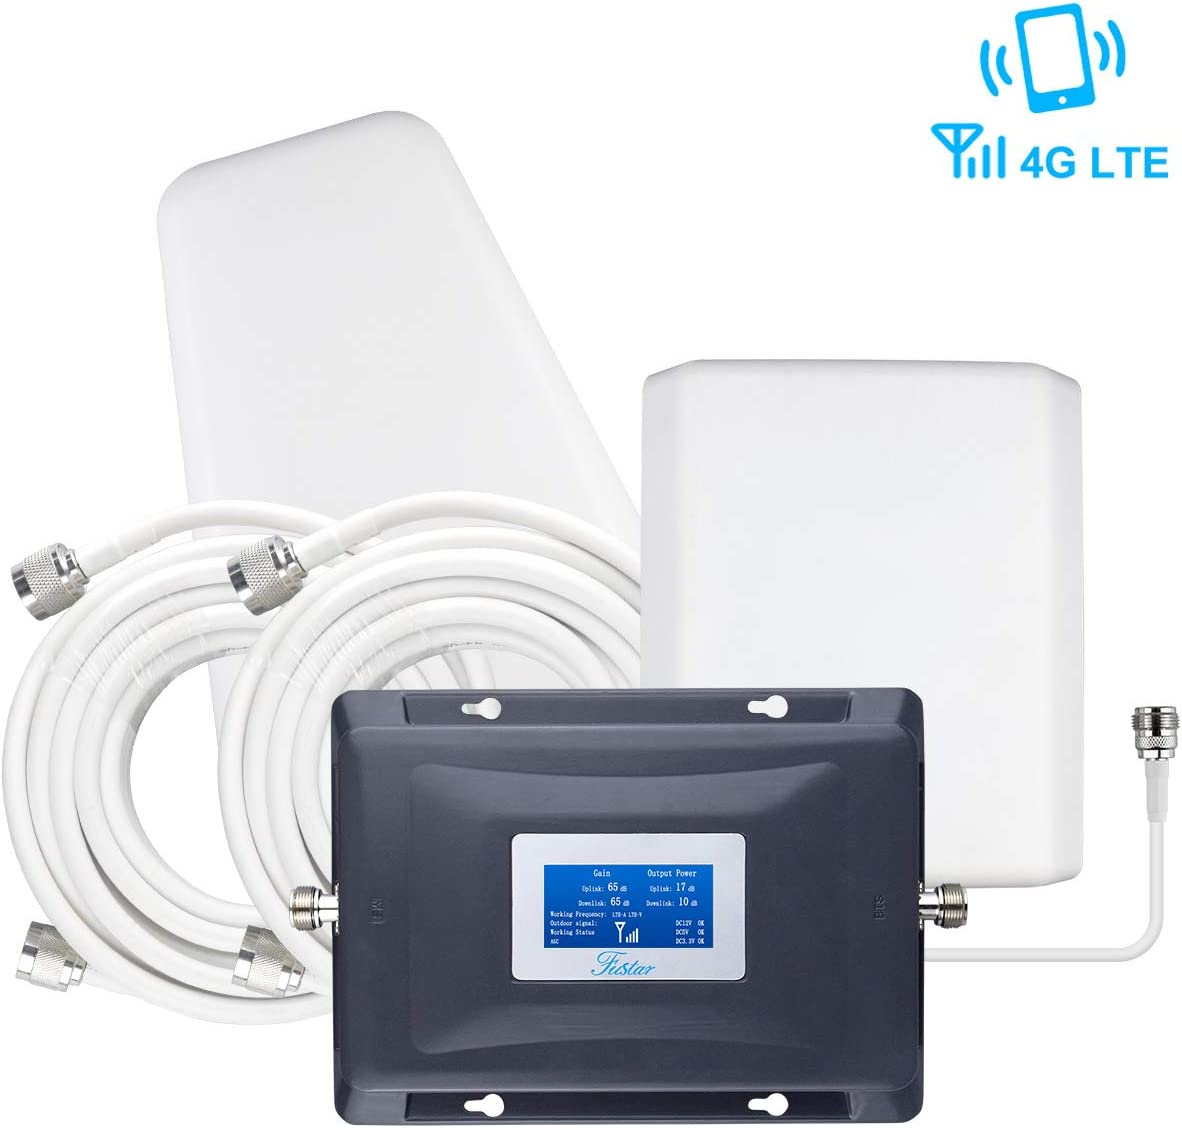 Cell Phone Signal Booster AT&T Cricket 4G LTE 700mhz Band 12/17 Cell Booster ATT T-Mobile Cell Phone Booster Repeater for Home 4G LTE Cell Phone Signal Amplifier Antenna Kit LCD 4G Data/Call FUSTAR